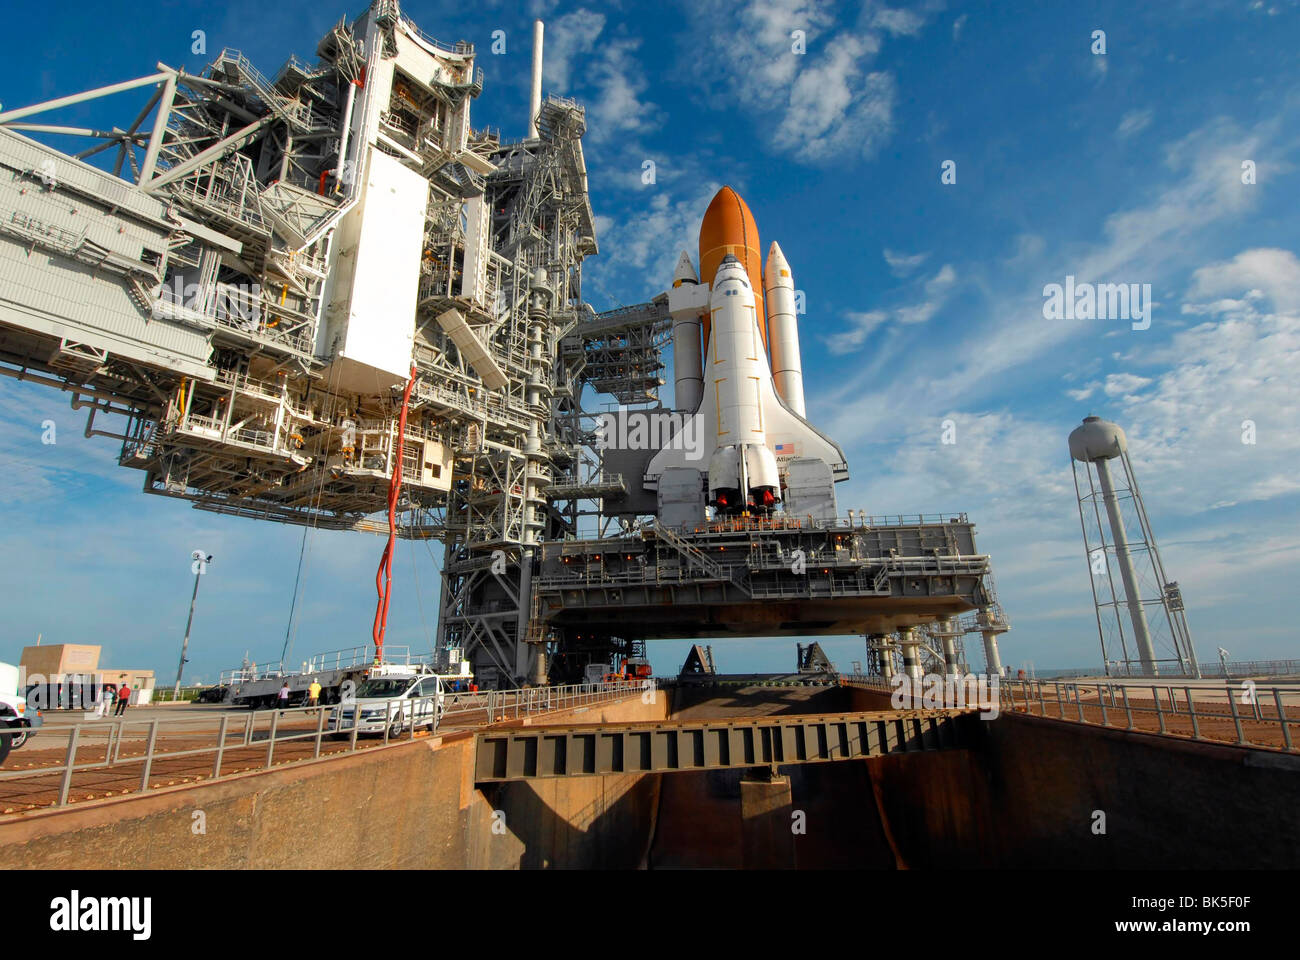 A daylight view at NASA's Kennedy Space Center Launch Pad ...